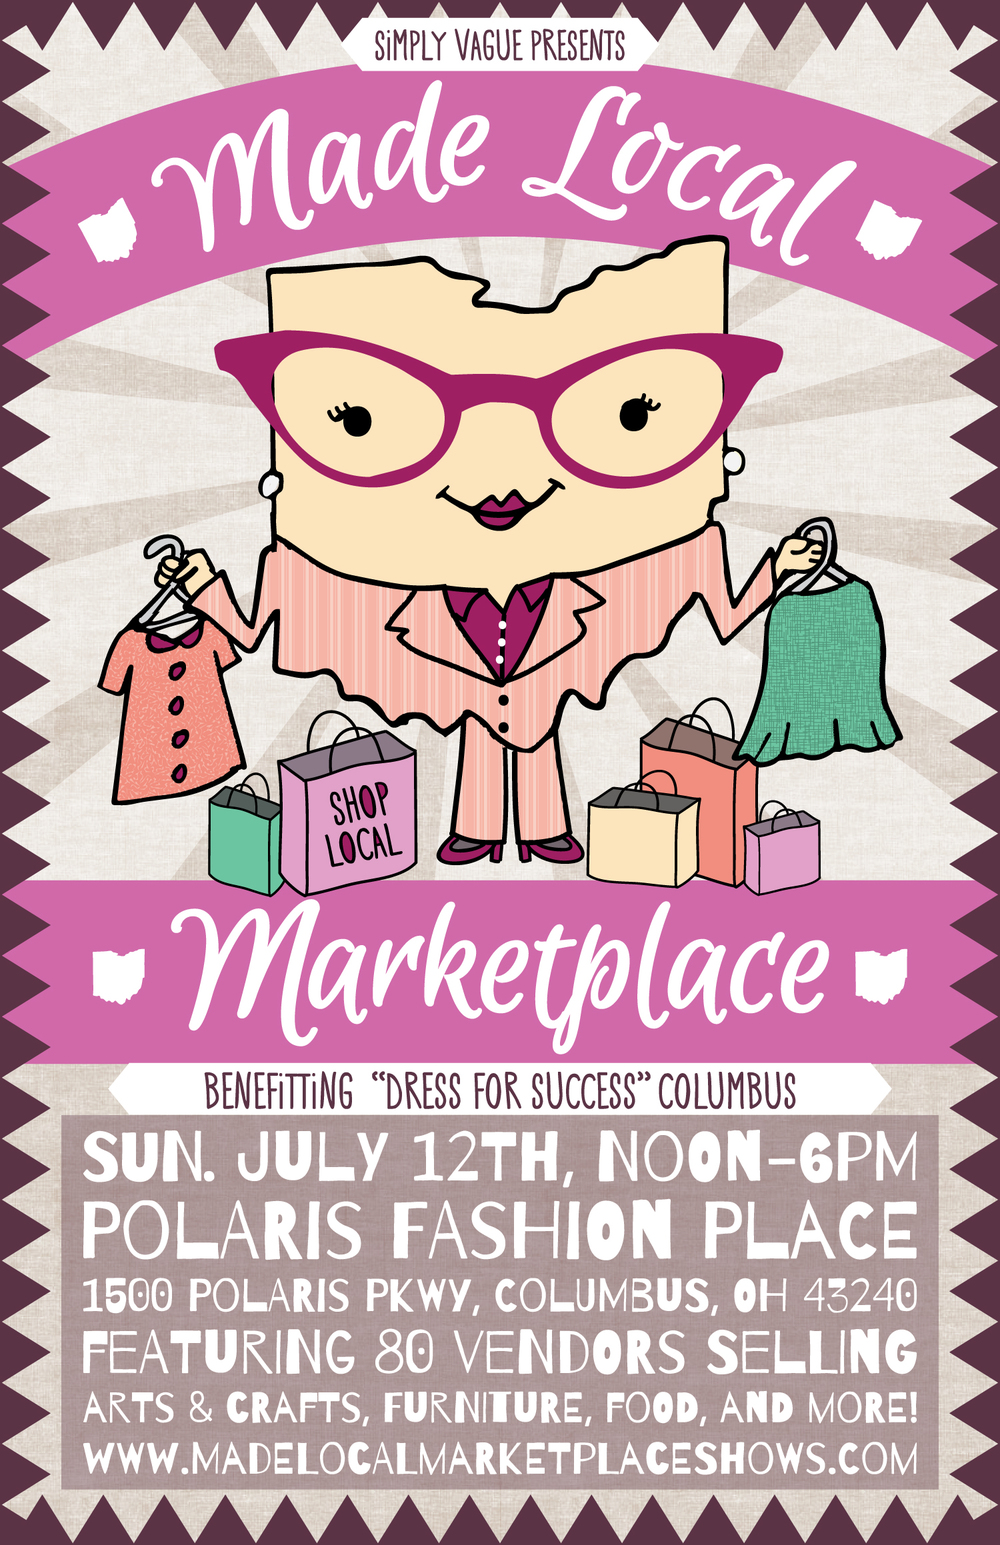 Poster Design for the Made Local Marketplace Summer Show 2015